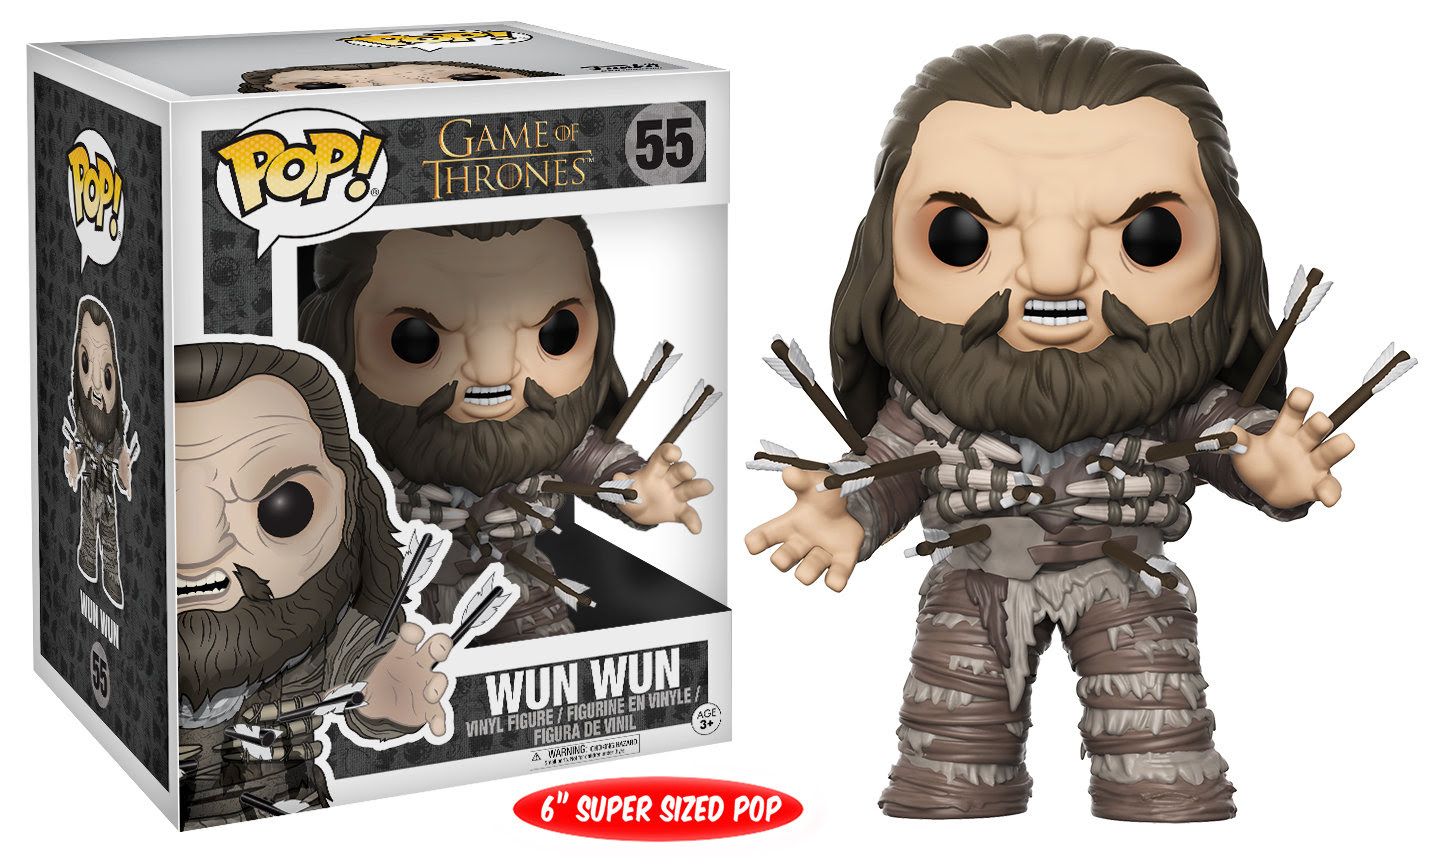 Game of Thrones Funko Pop Wun Wun